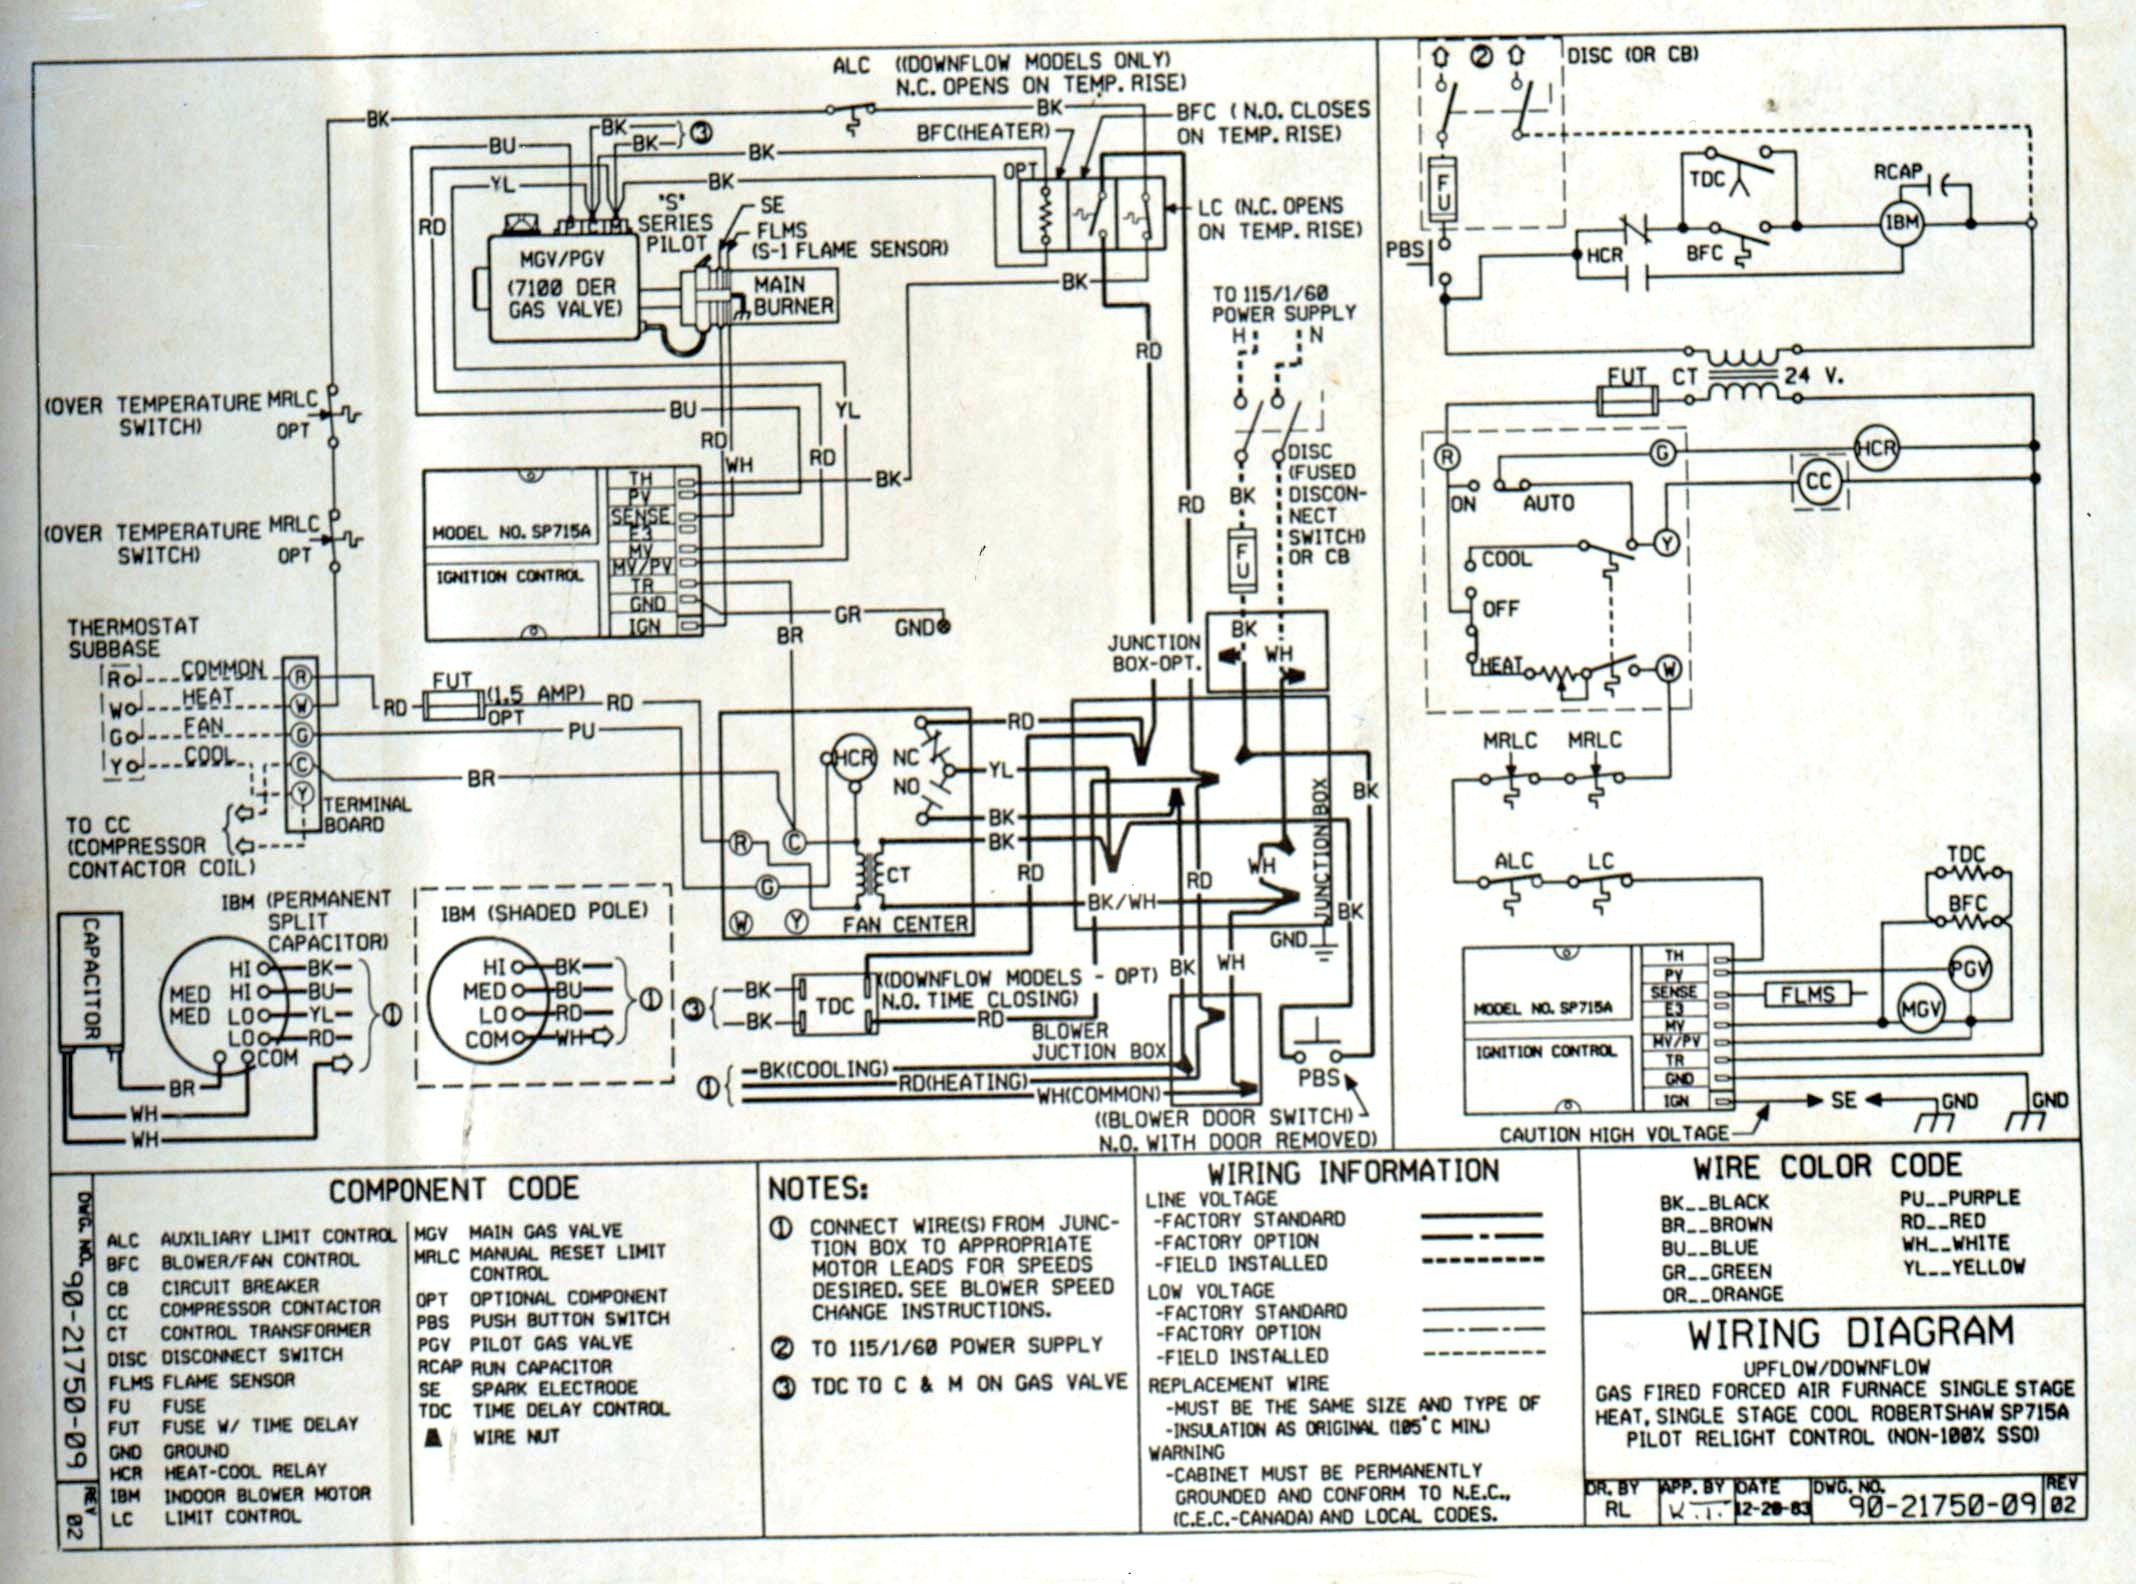 Electric Furnace Wiring Diagram Package Air Conditioning Unit Wiring Diagram Save Carrier Electric Furnace Wiring